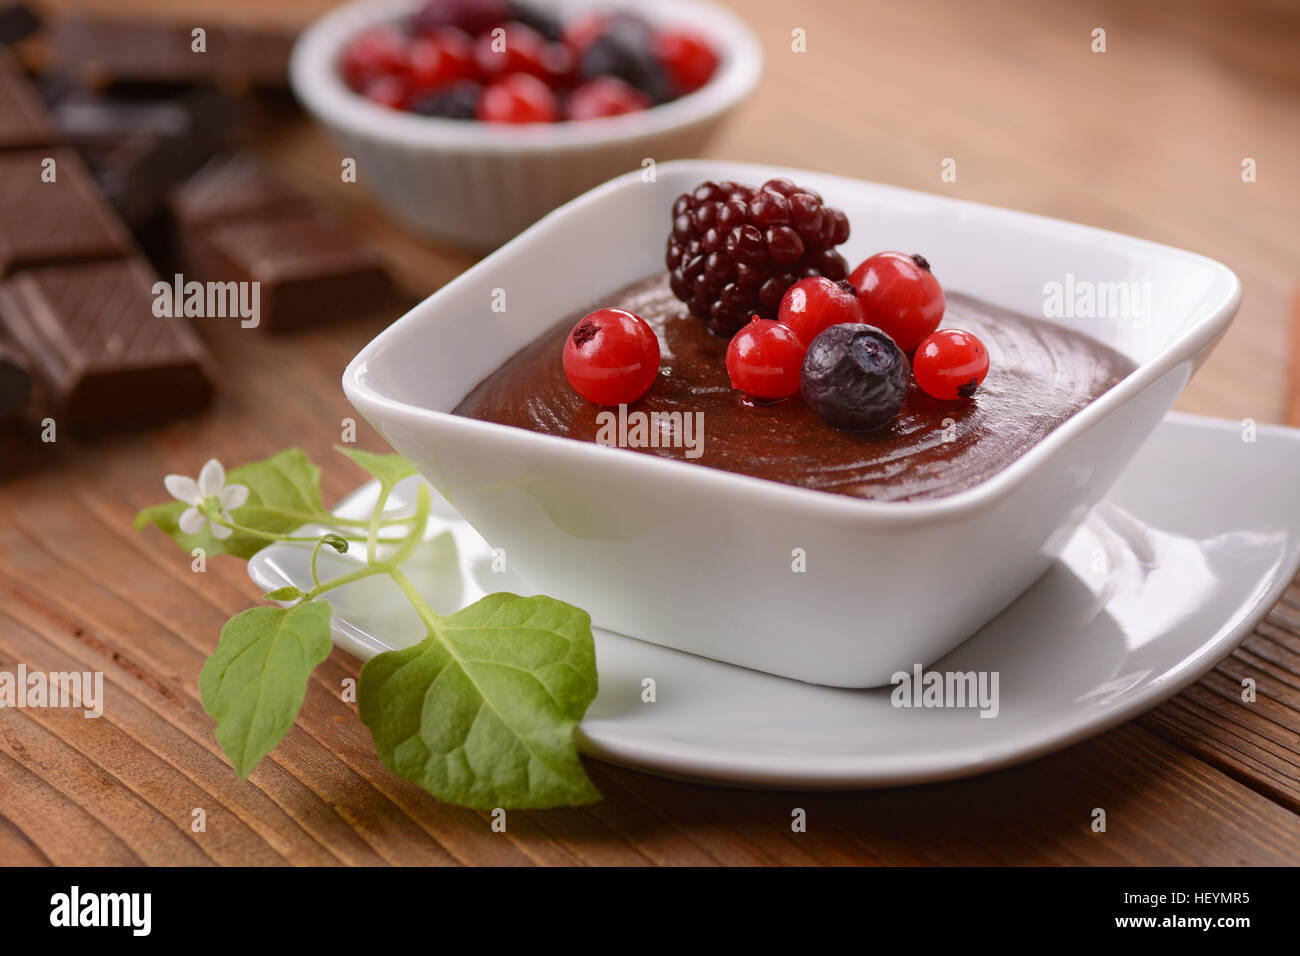 chocolate mousse decorated with berries - Stock Image